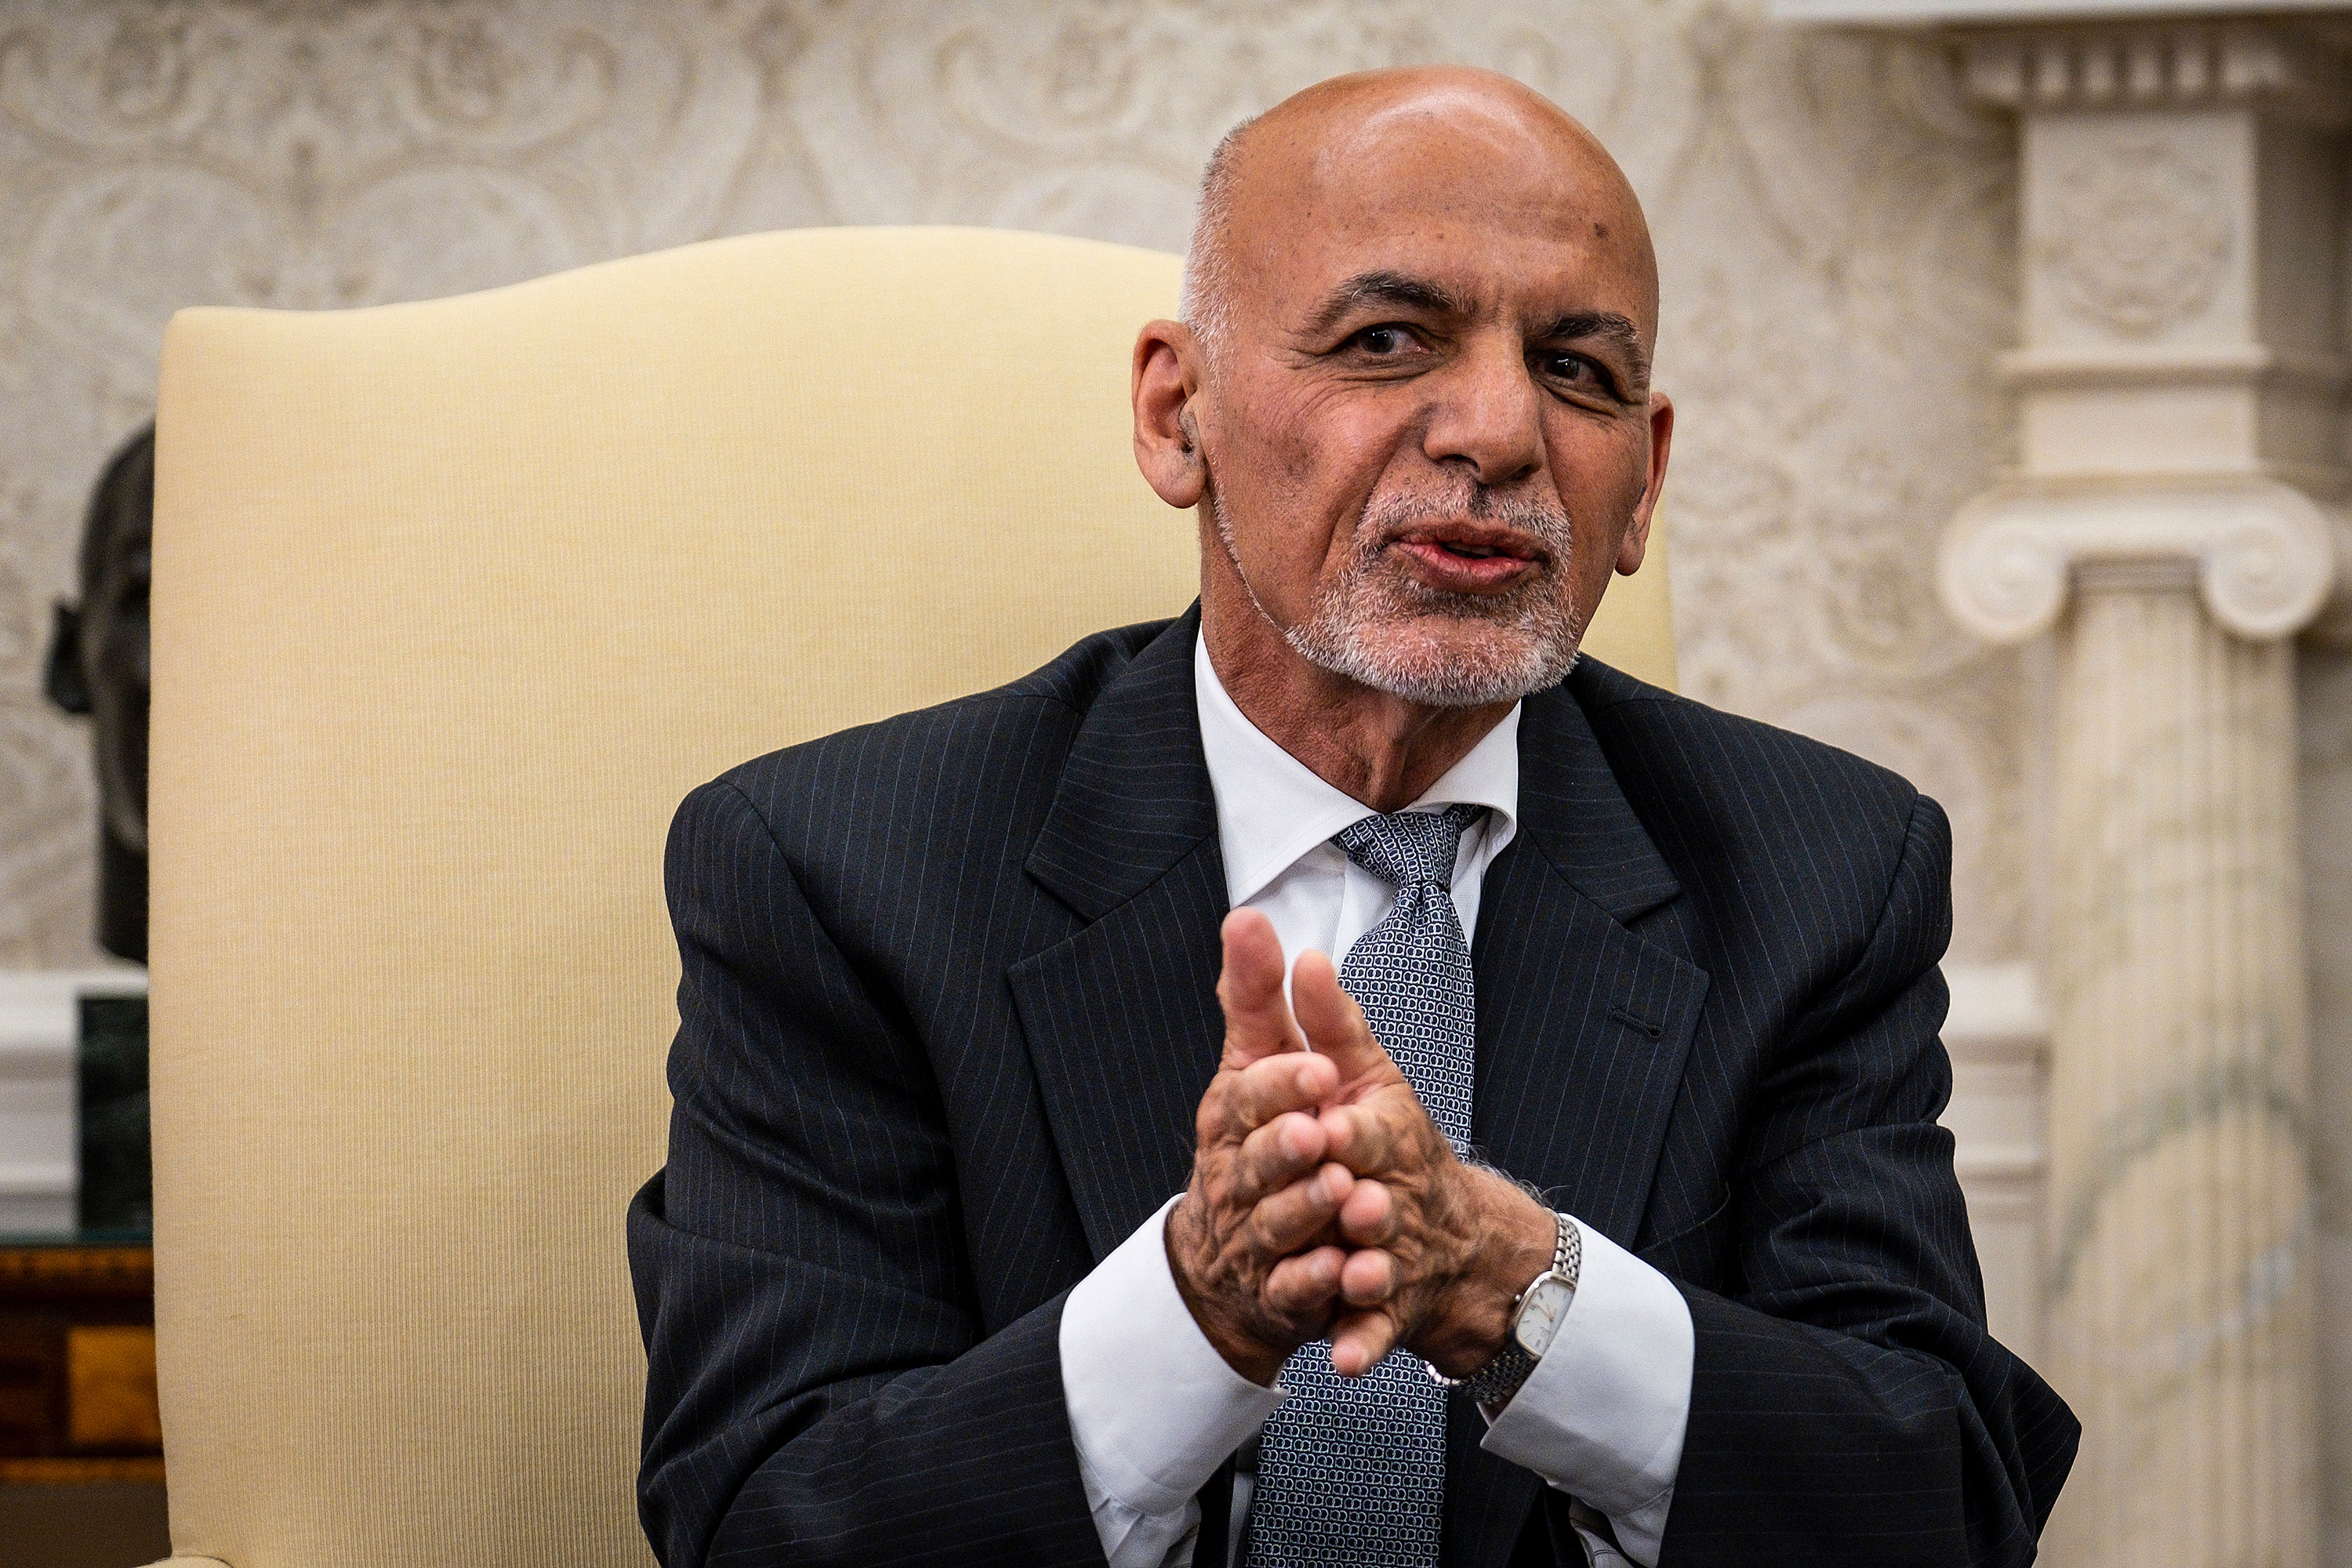 Former Afghan president Ashraf Ghani makes brief remarks during a meeting with President Joe Biden in the Oval Office on June 25.